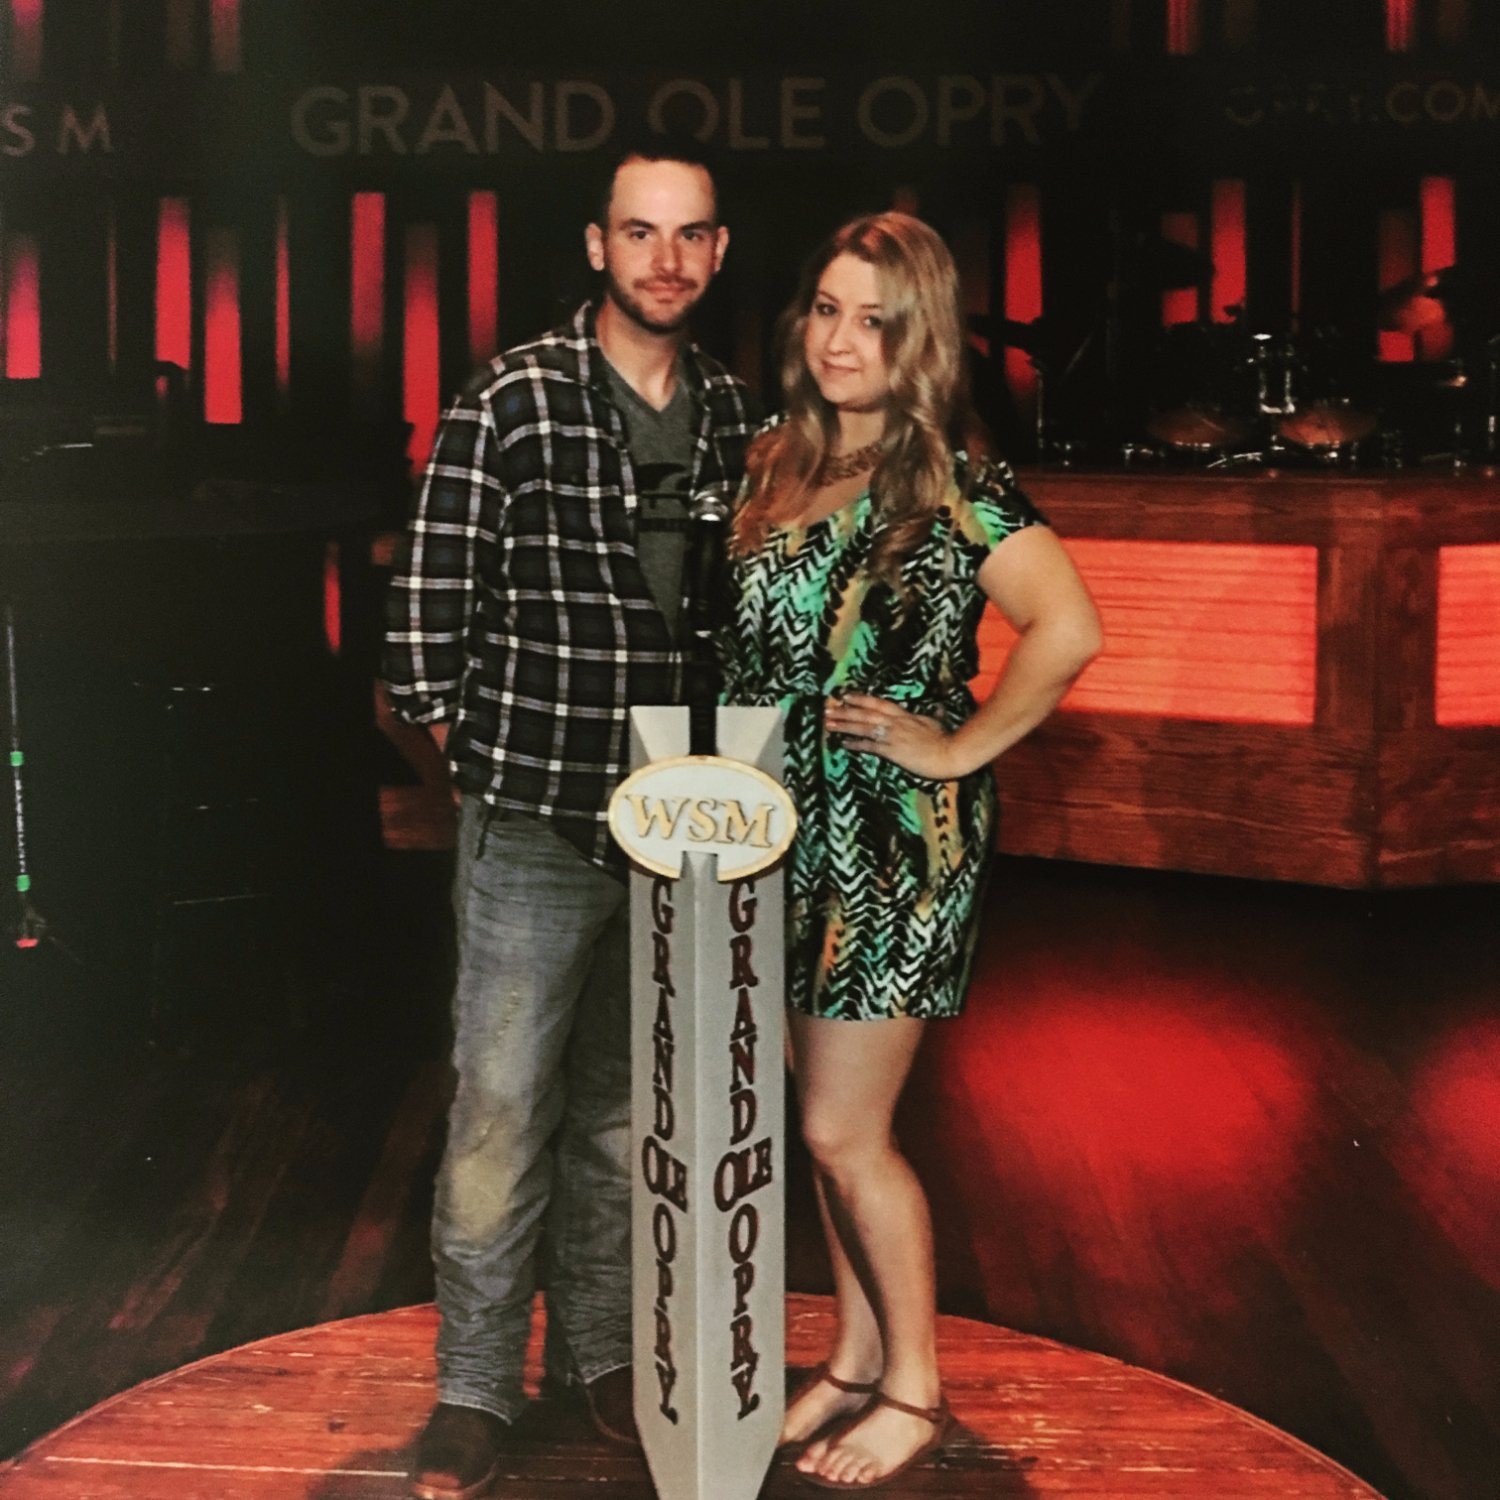 On stage tour photo at The Grand Ol' Opry